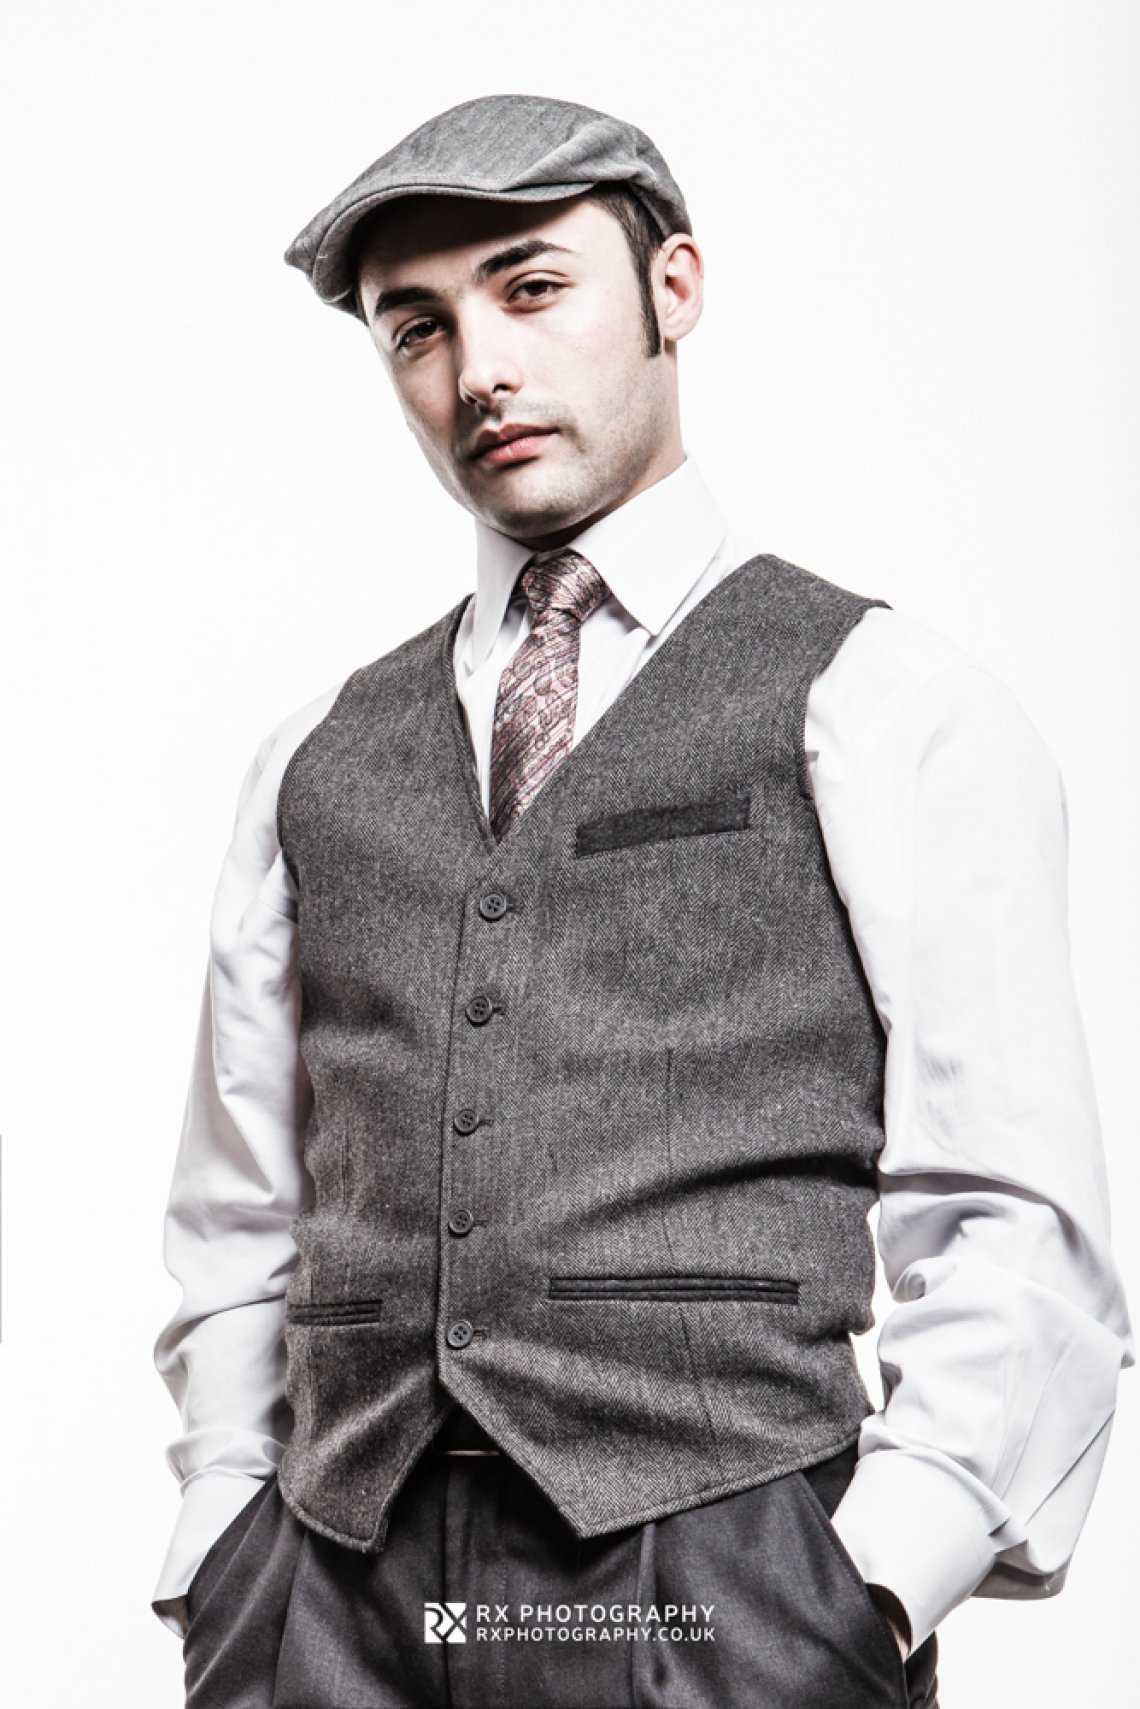 RX Photography portrait creative photo of young italian man in stylish clothes